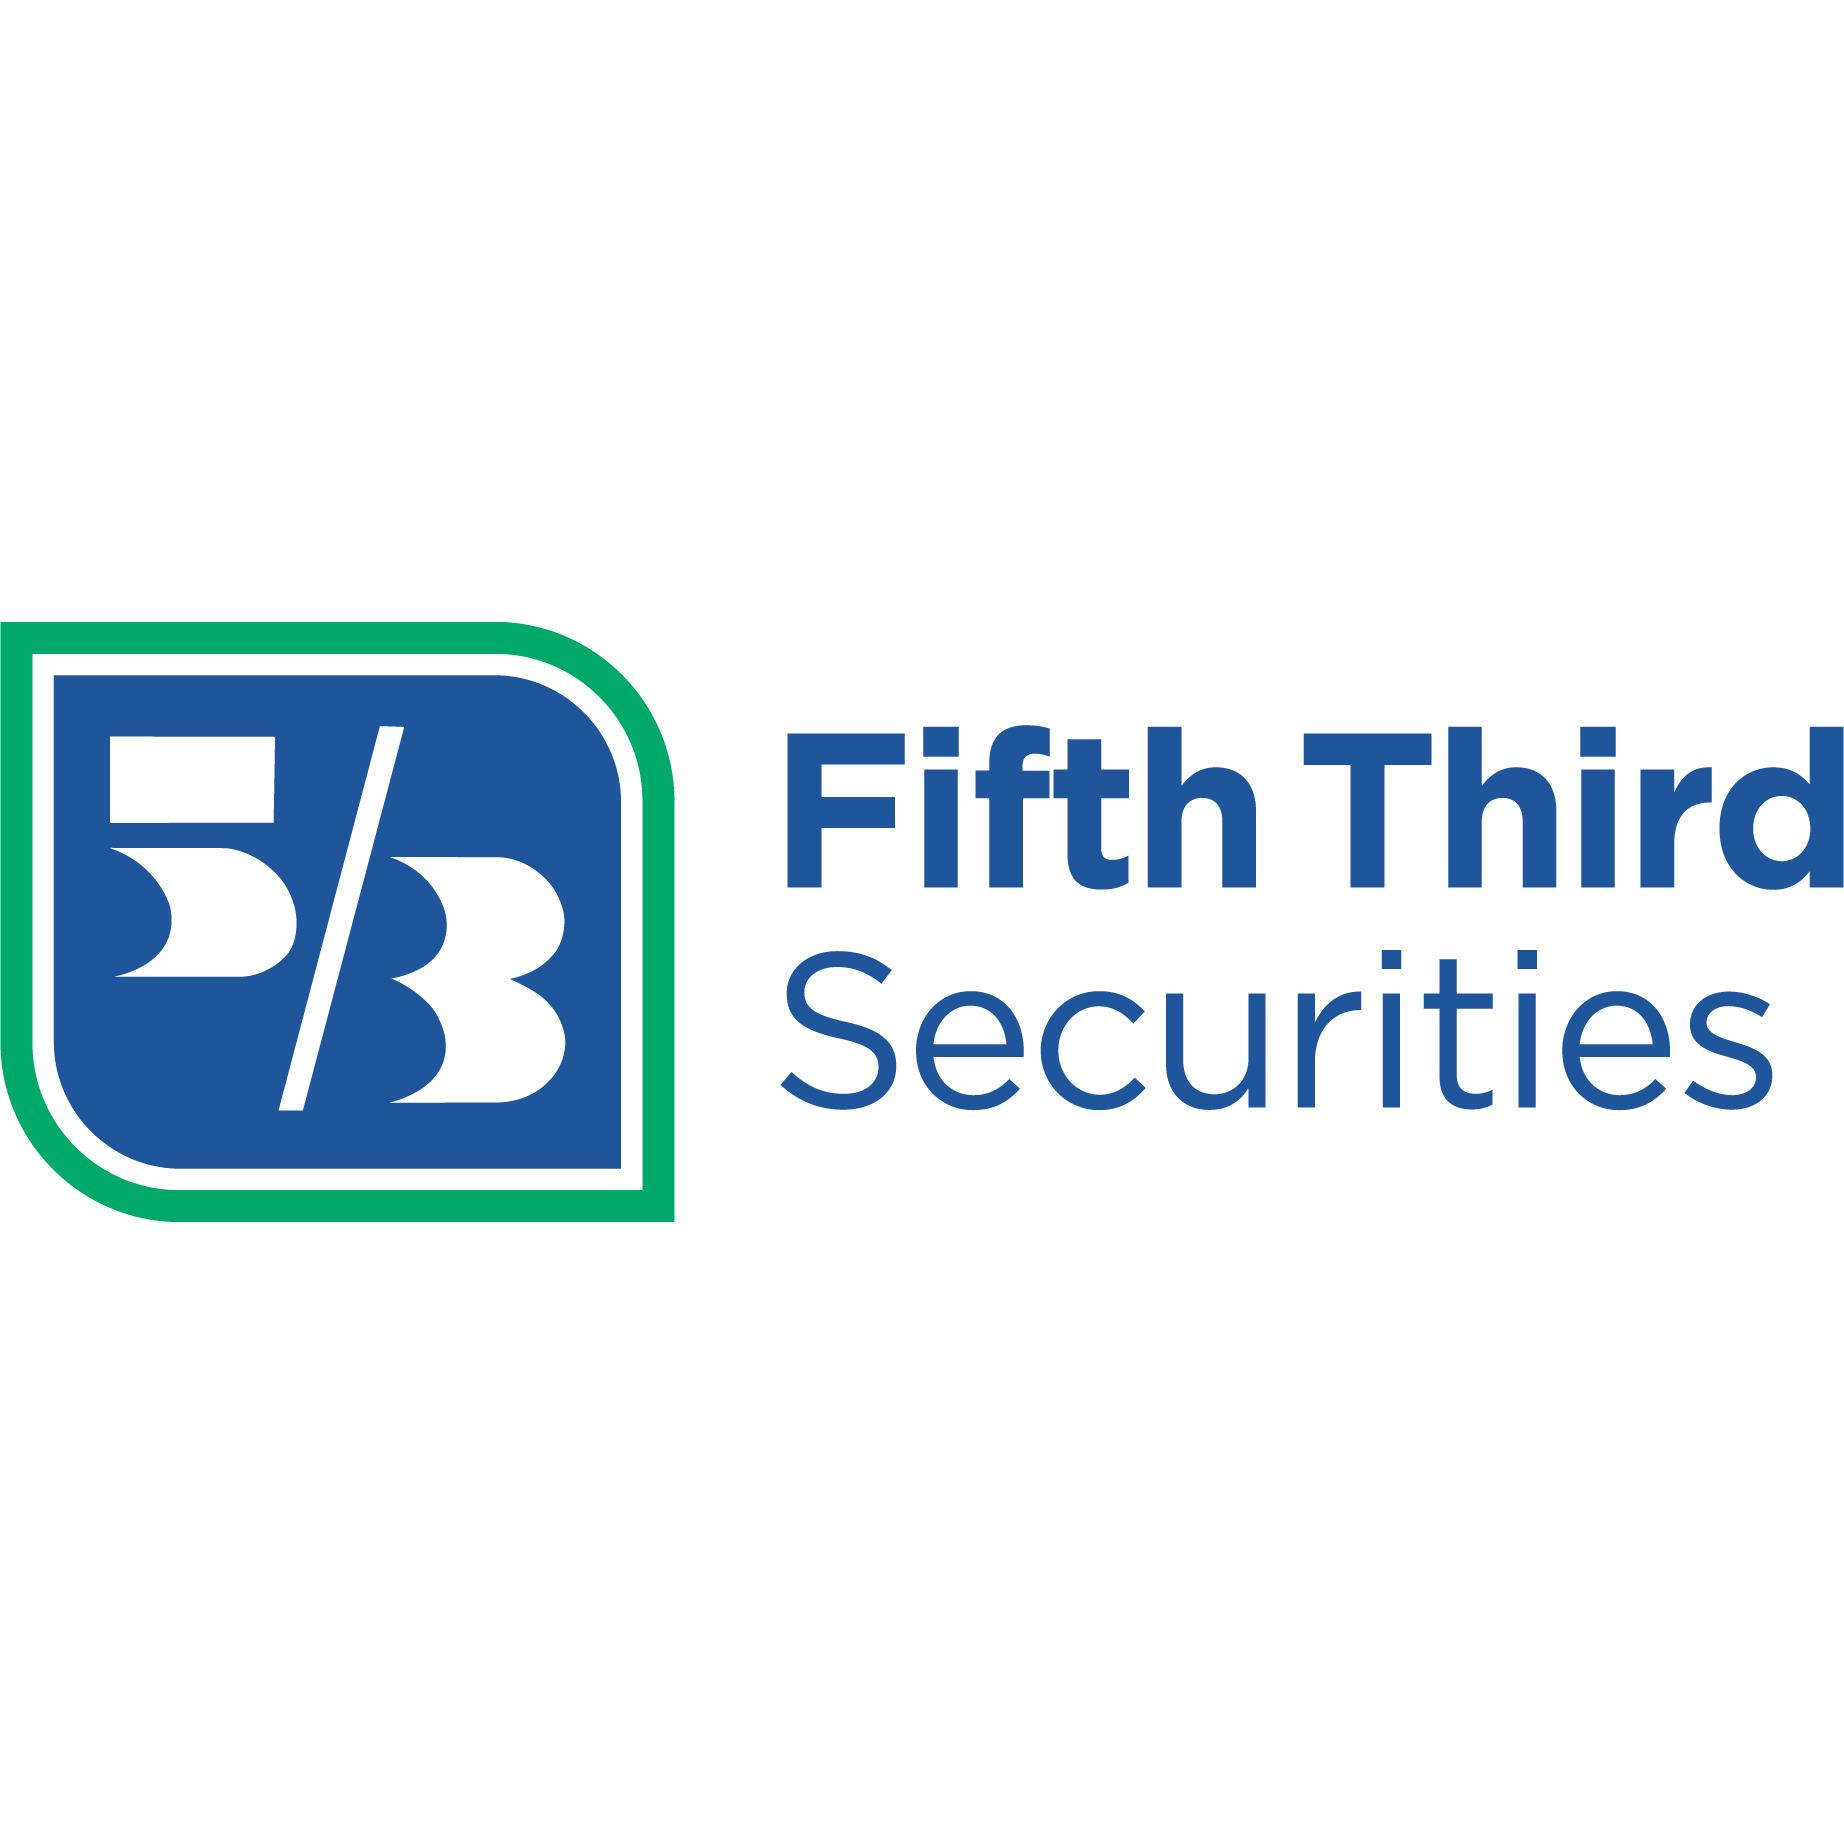 Fifth Third Securities - John Gedwill